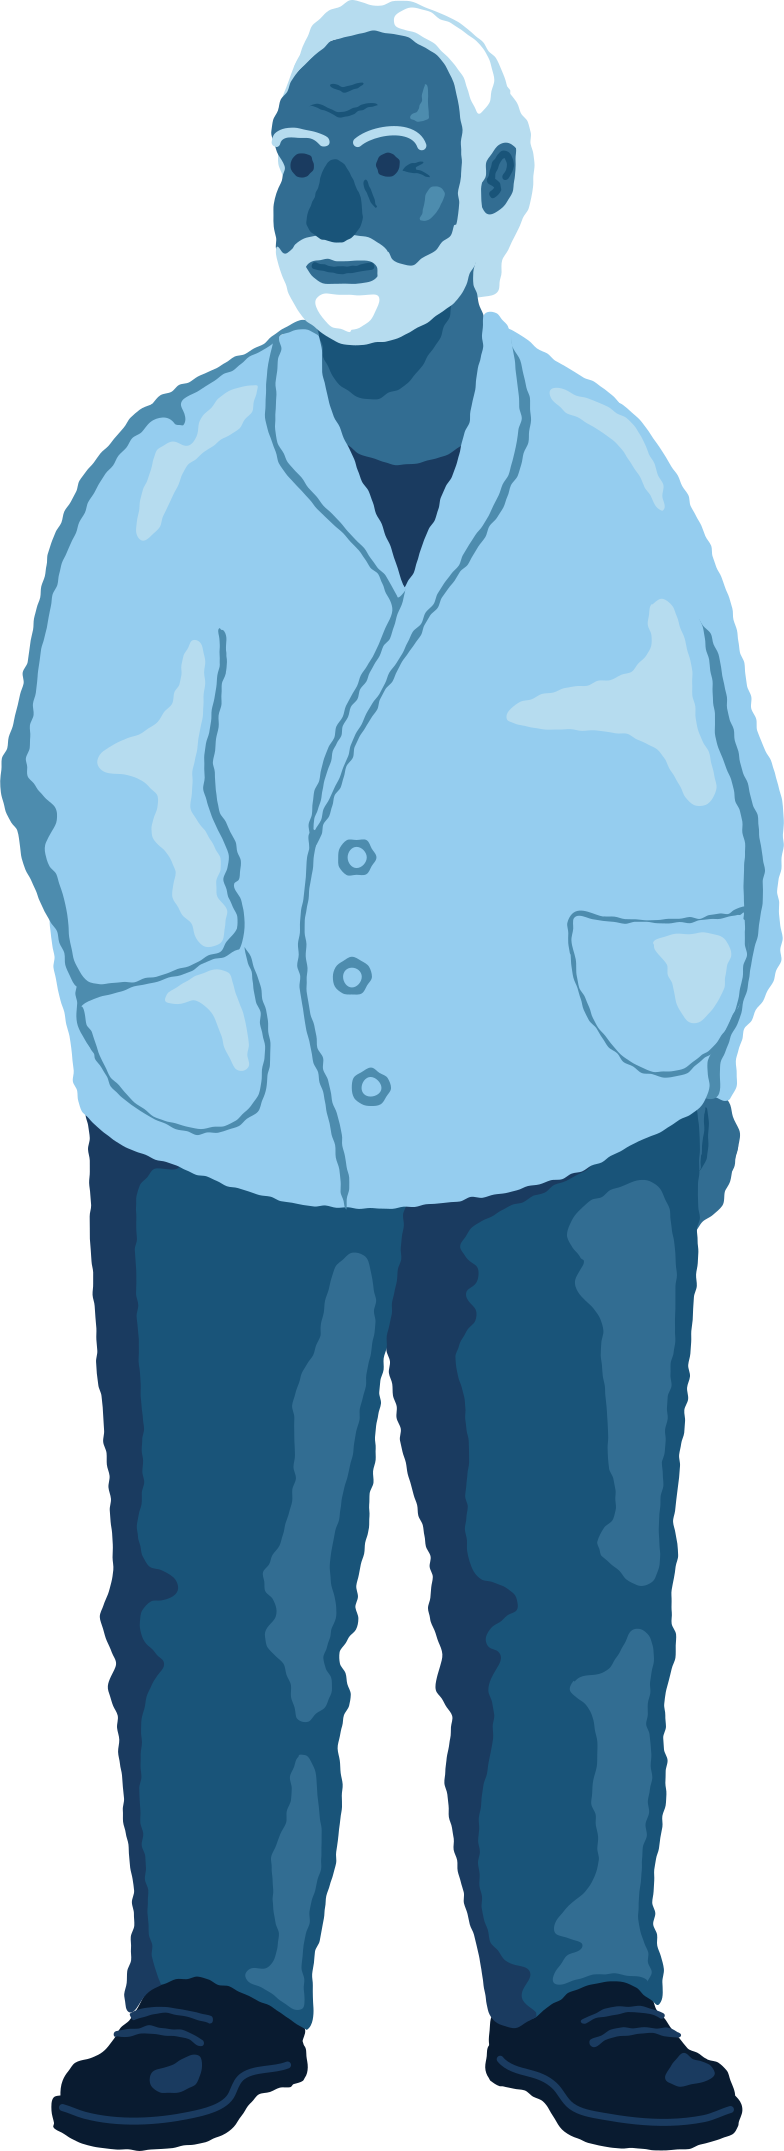 old chubby man standing front Clipart illustration in PNG, SVG